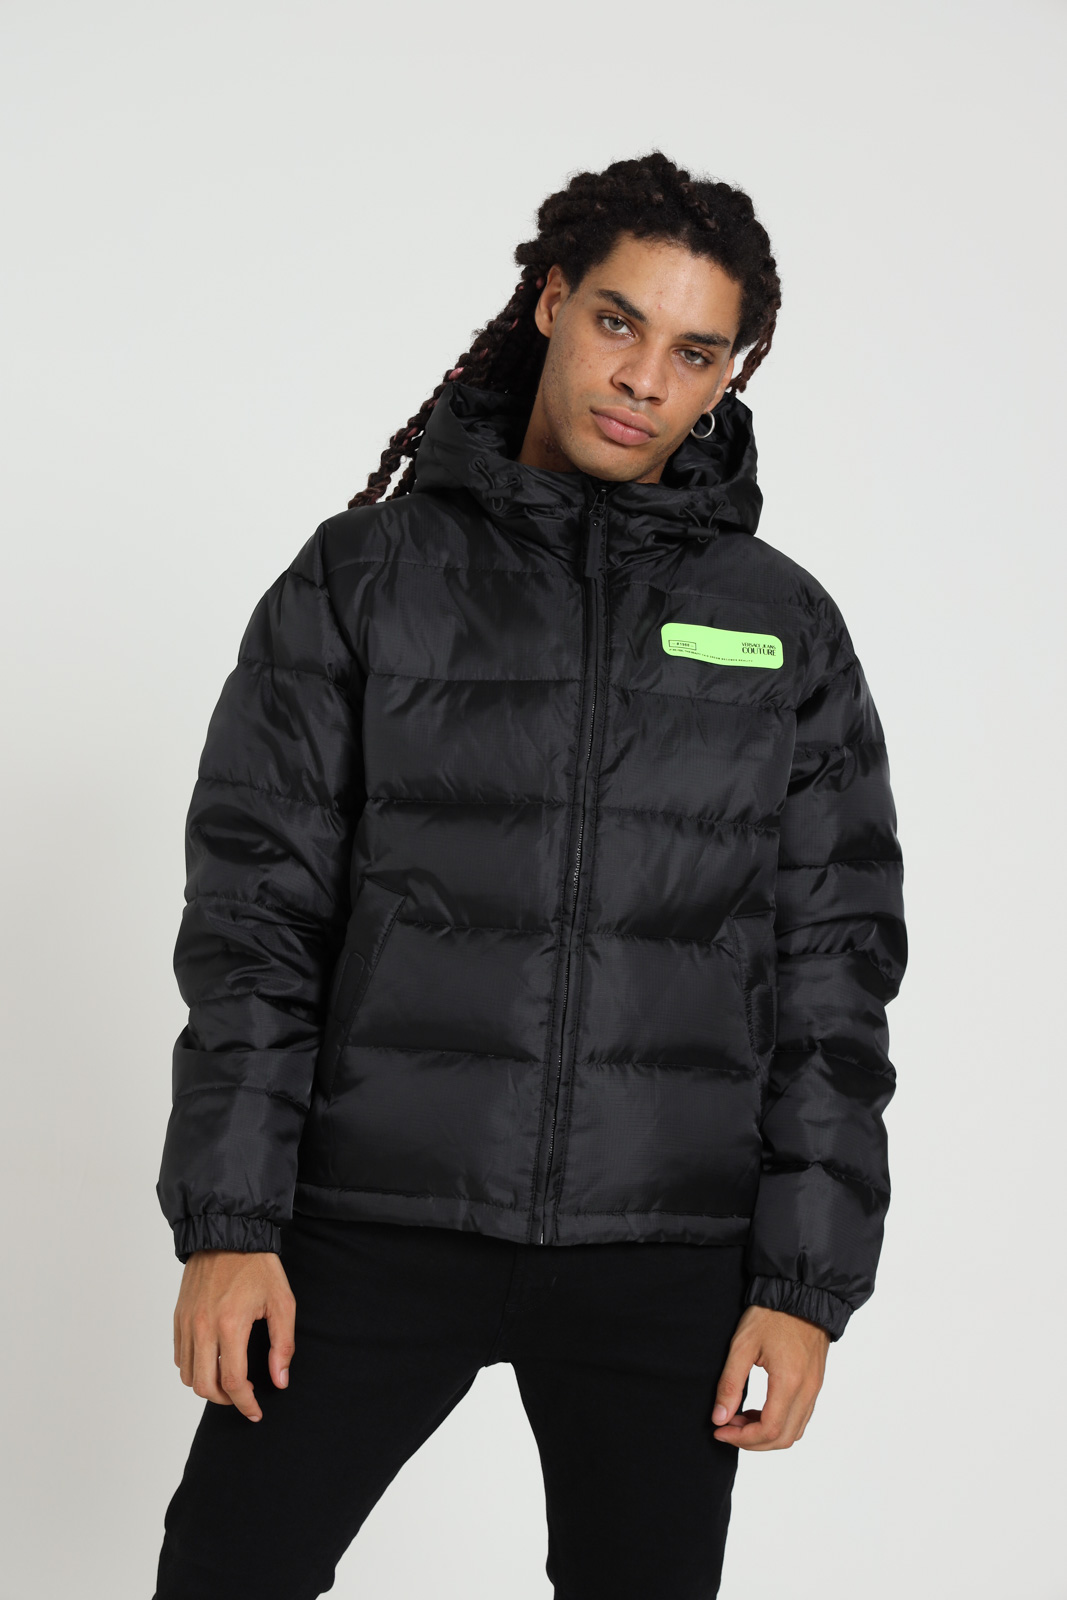 VERSACE JEANS COUTURE | Jacket | E5GZA91325133899